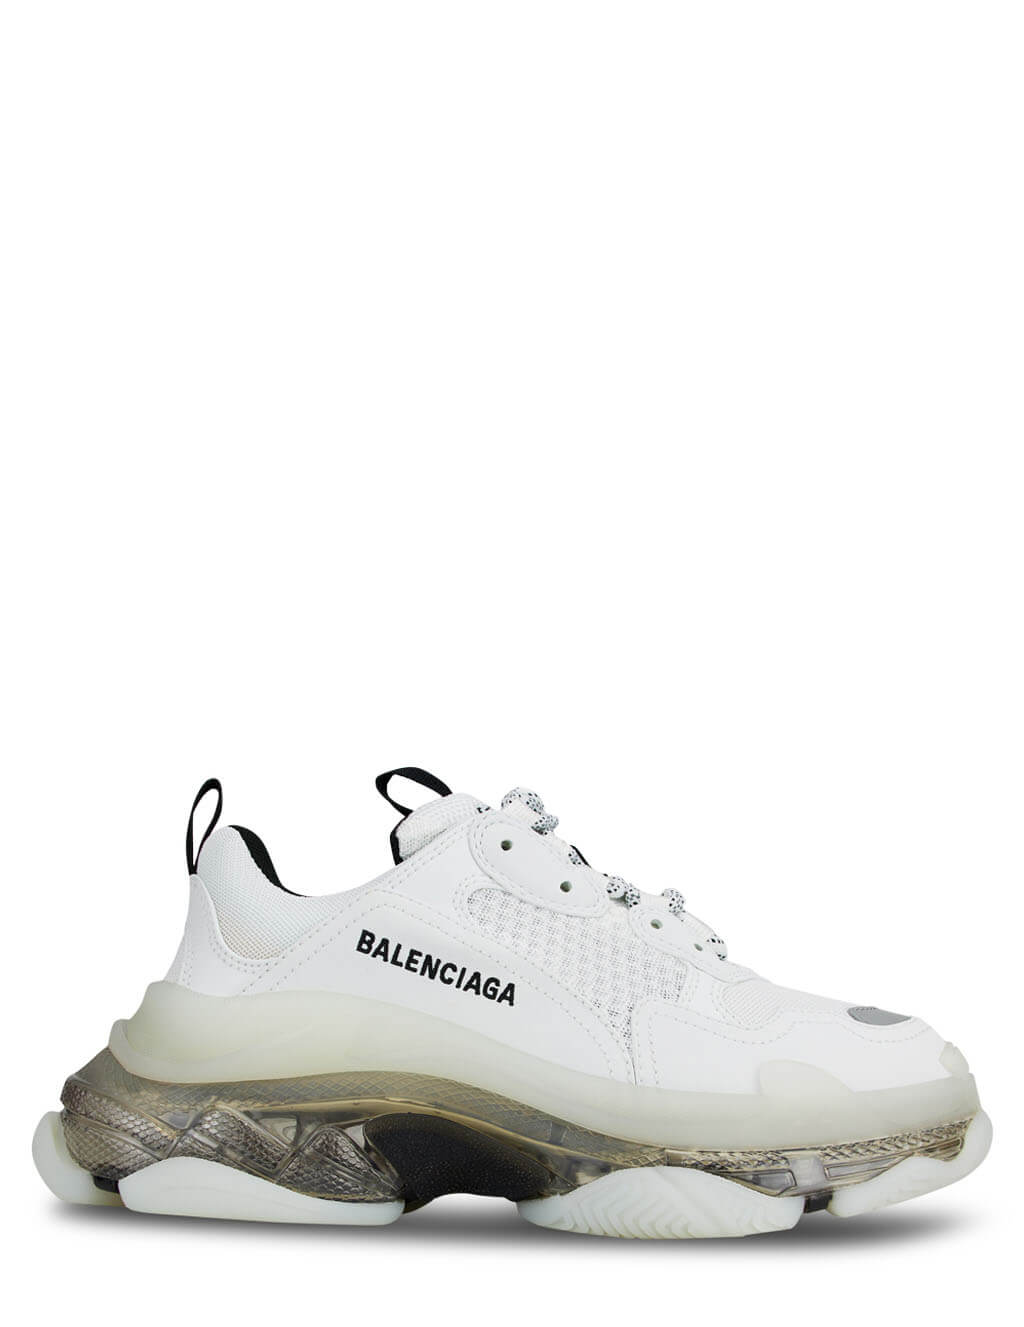 Balenciaga Women's Triple S Clear Sole Sneakers 544351W2GS19012